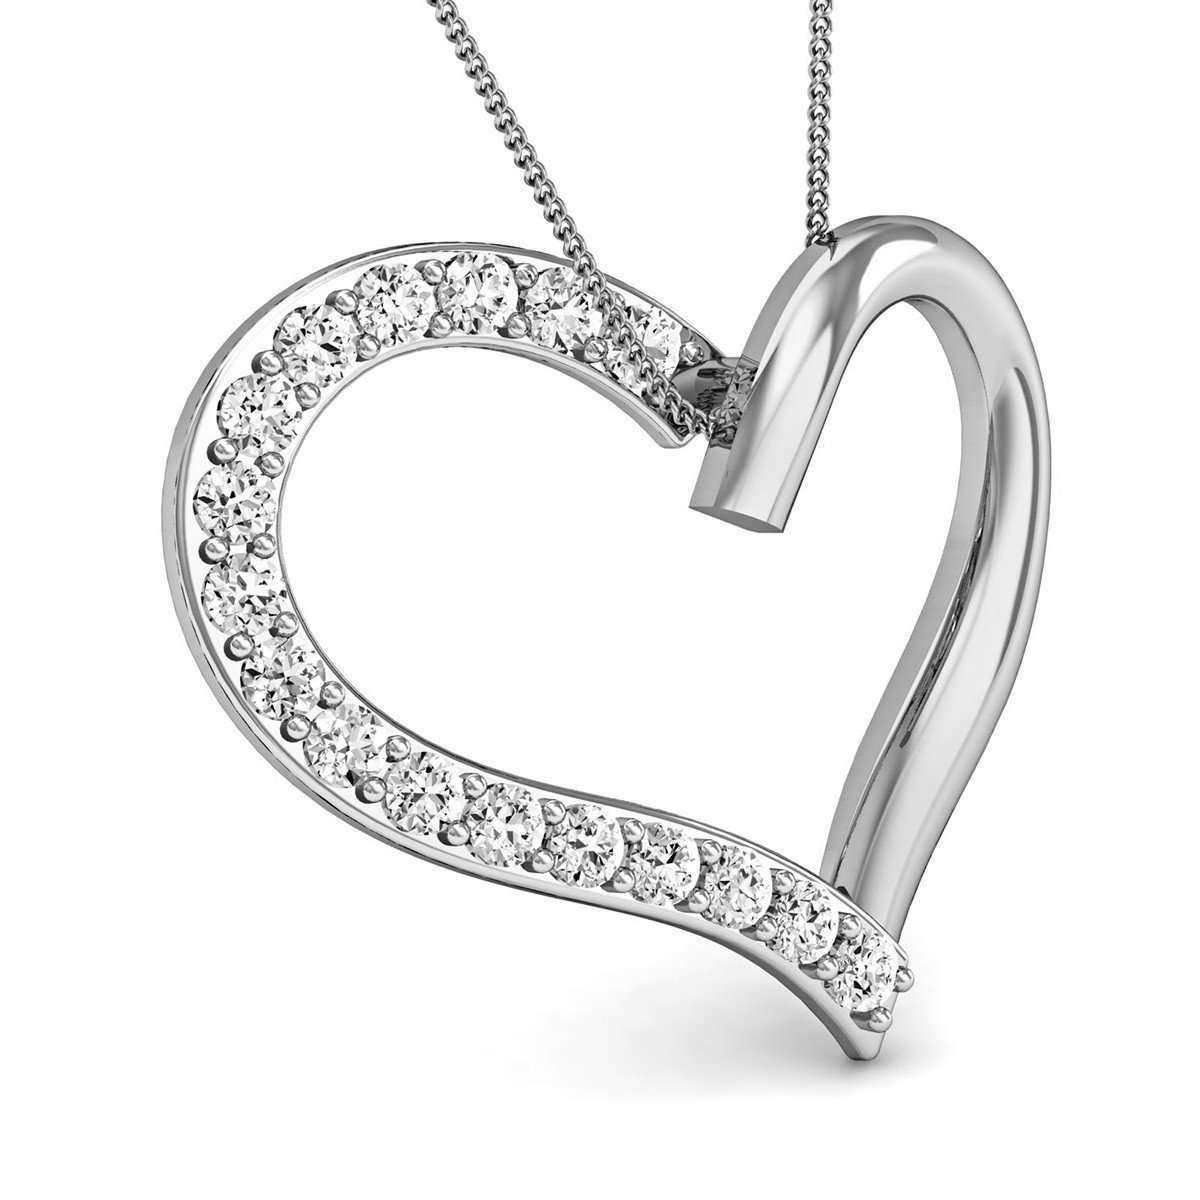 Diamoire Jewels 10kt White Gold Heart Pendant with Premium Quality Diamonds kZGdGQF